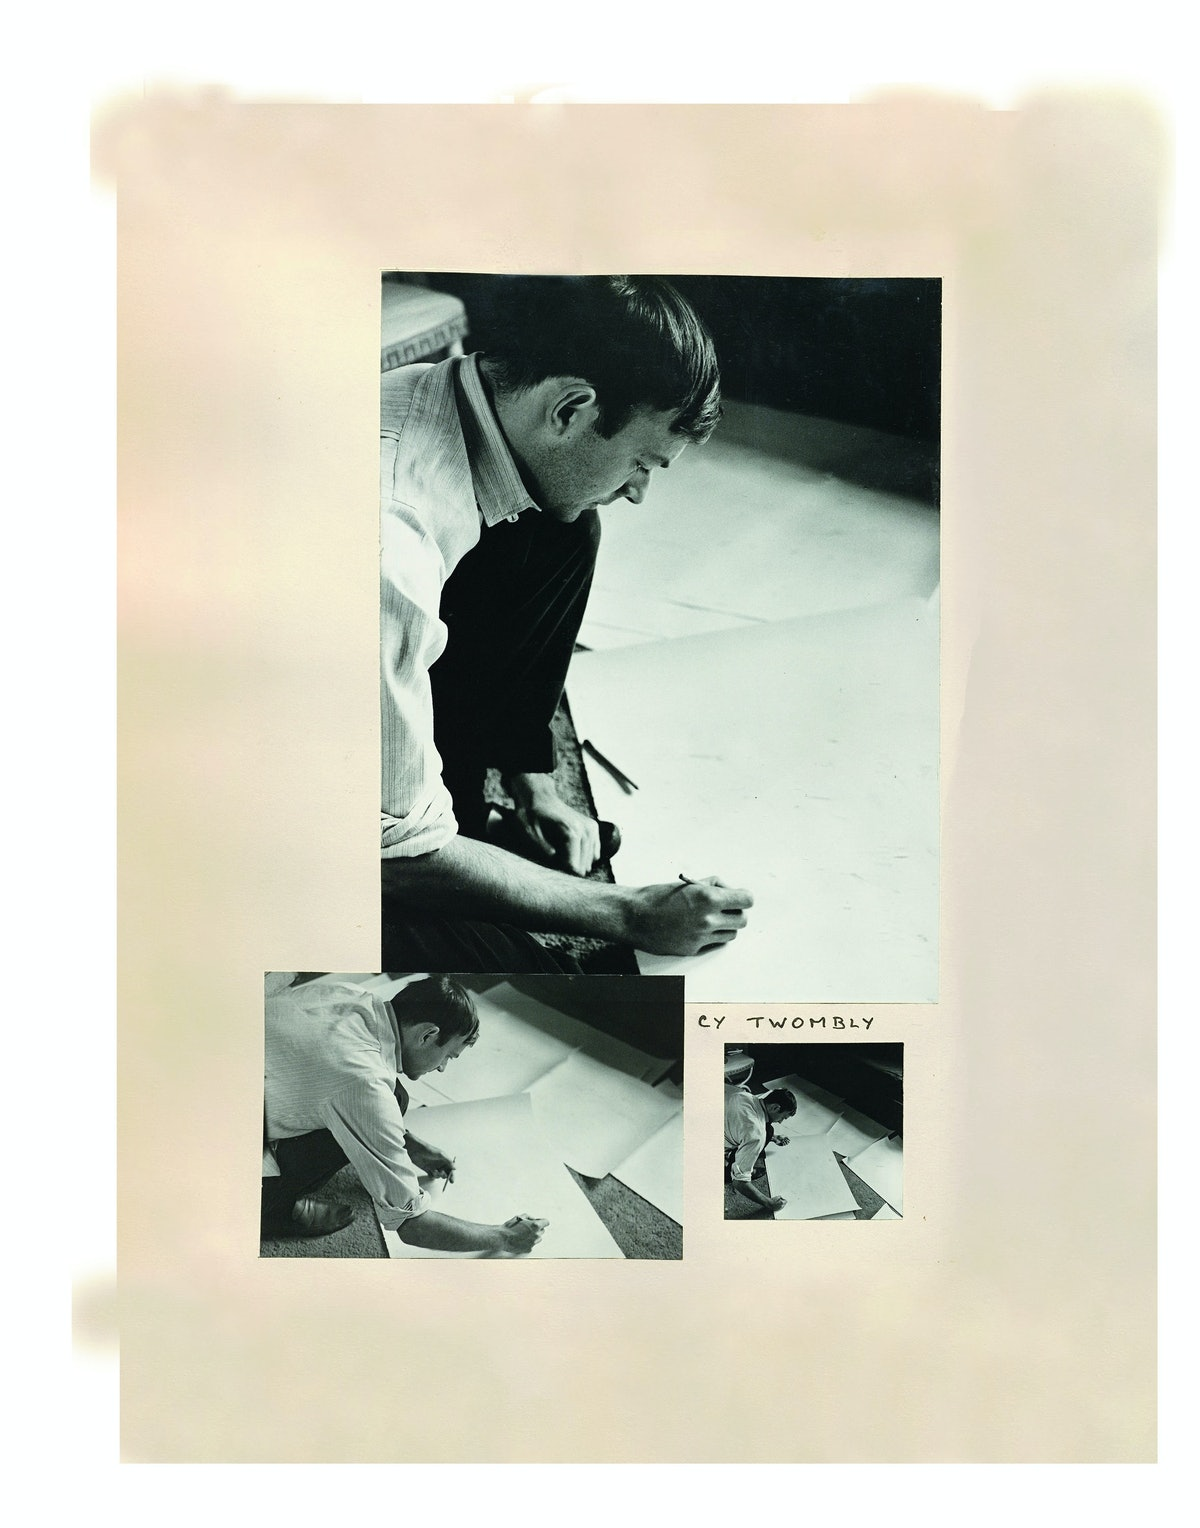 Cy Twombly drawing